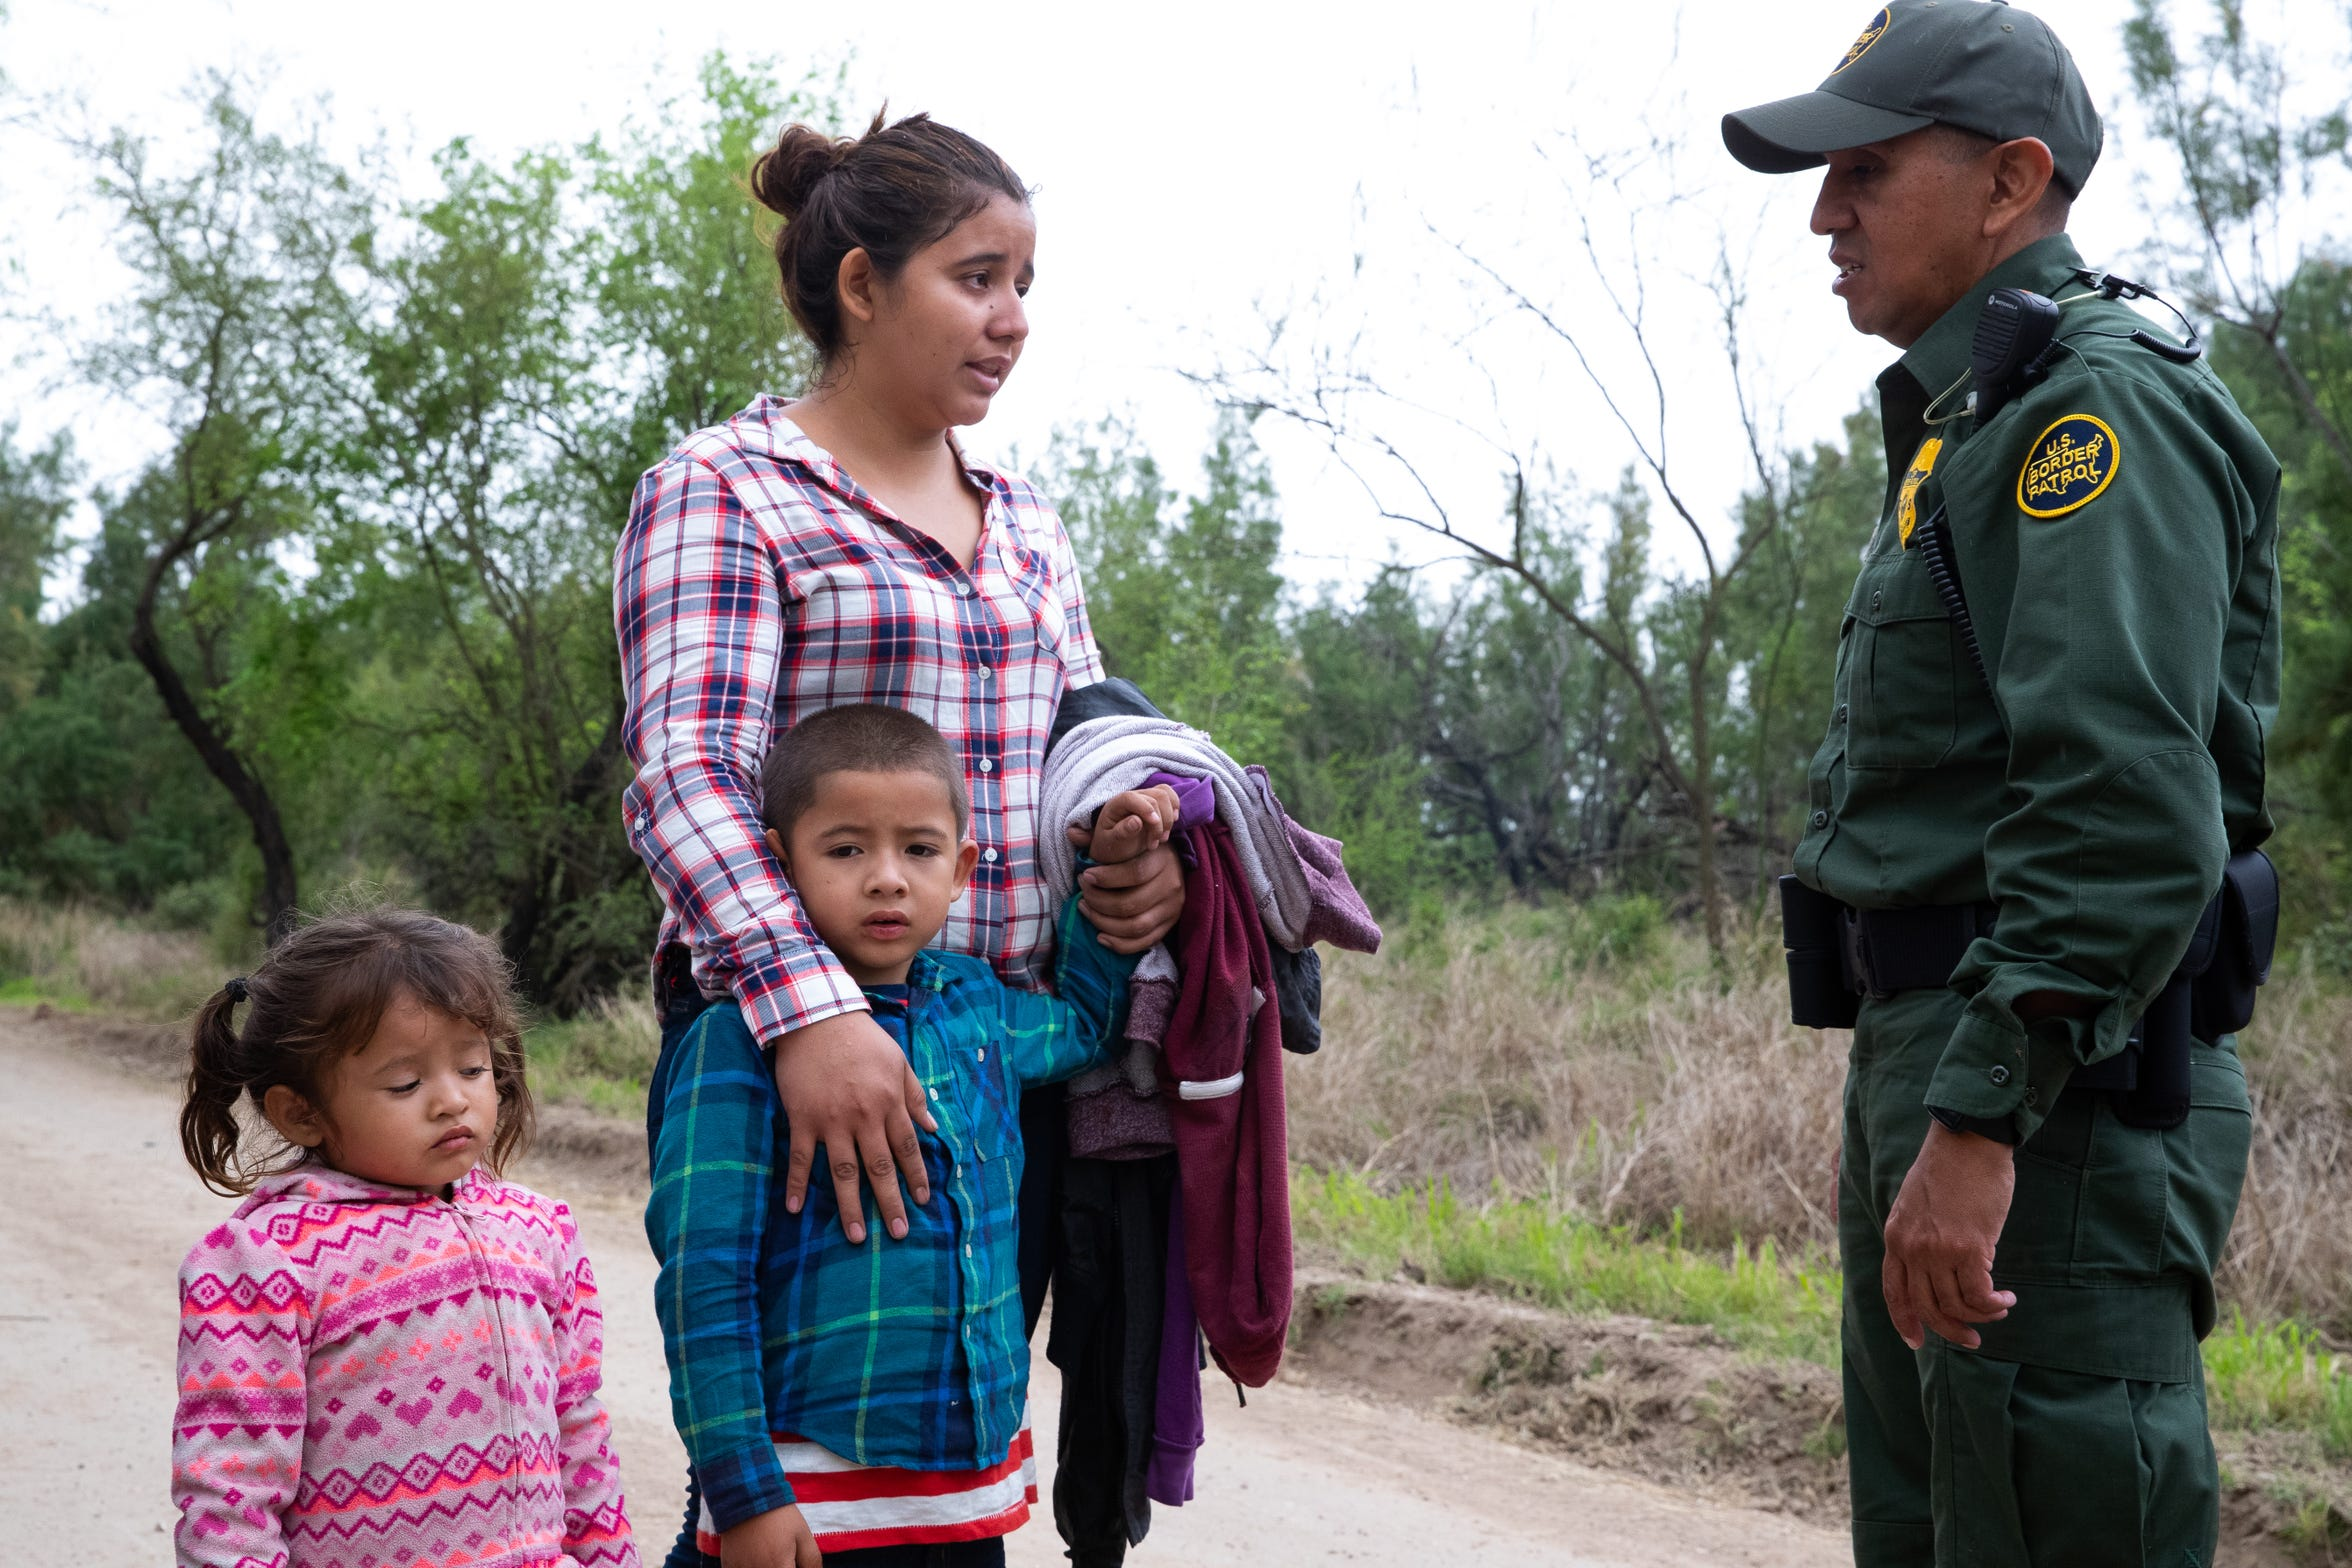 Border Patrol Agent Hermann Rivera talks with a 22-year-old women from El Salvador and her 5 and 3-year-old children after crossing the Rio Grande Valley from Mexico near Mission, Texas, on Tuesday, Feb. 26, 2019.